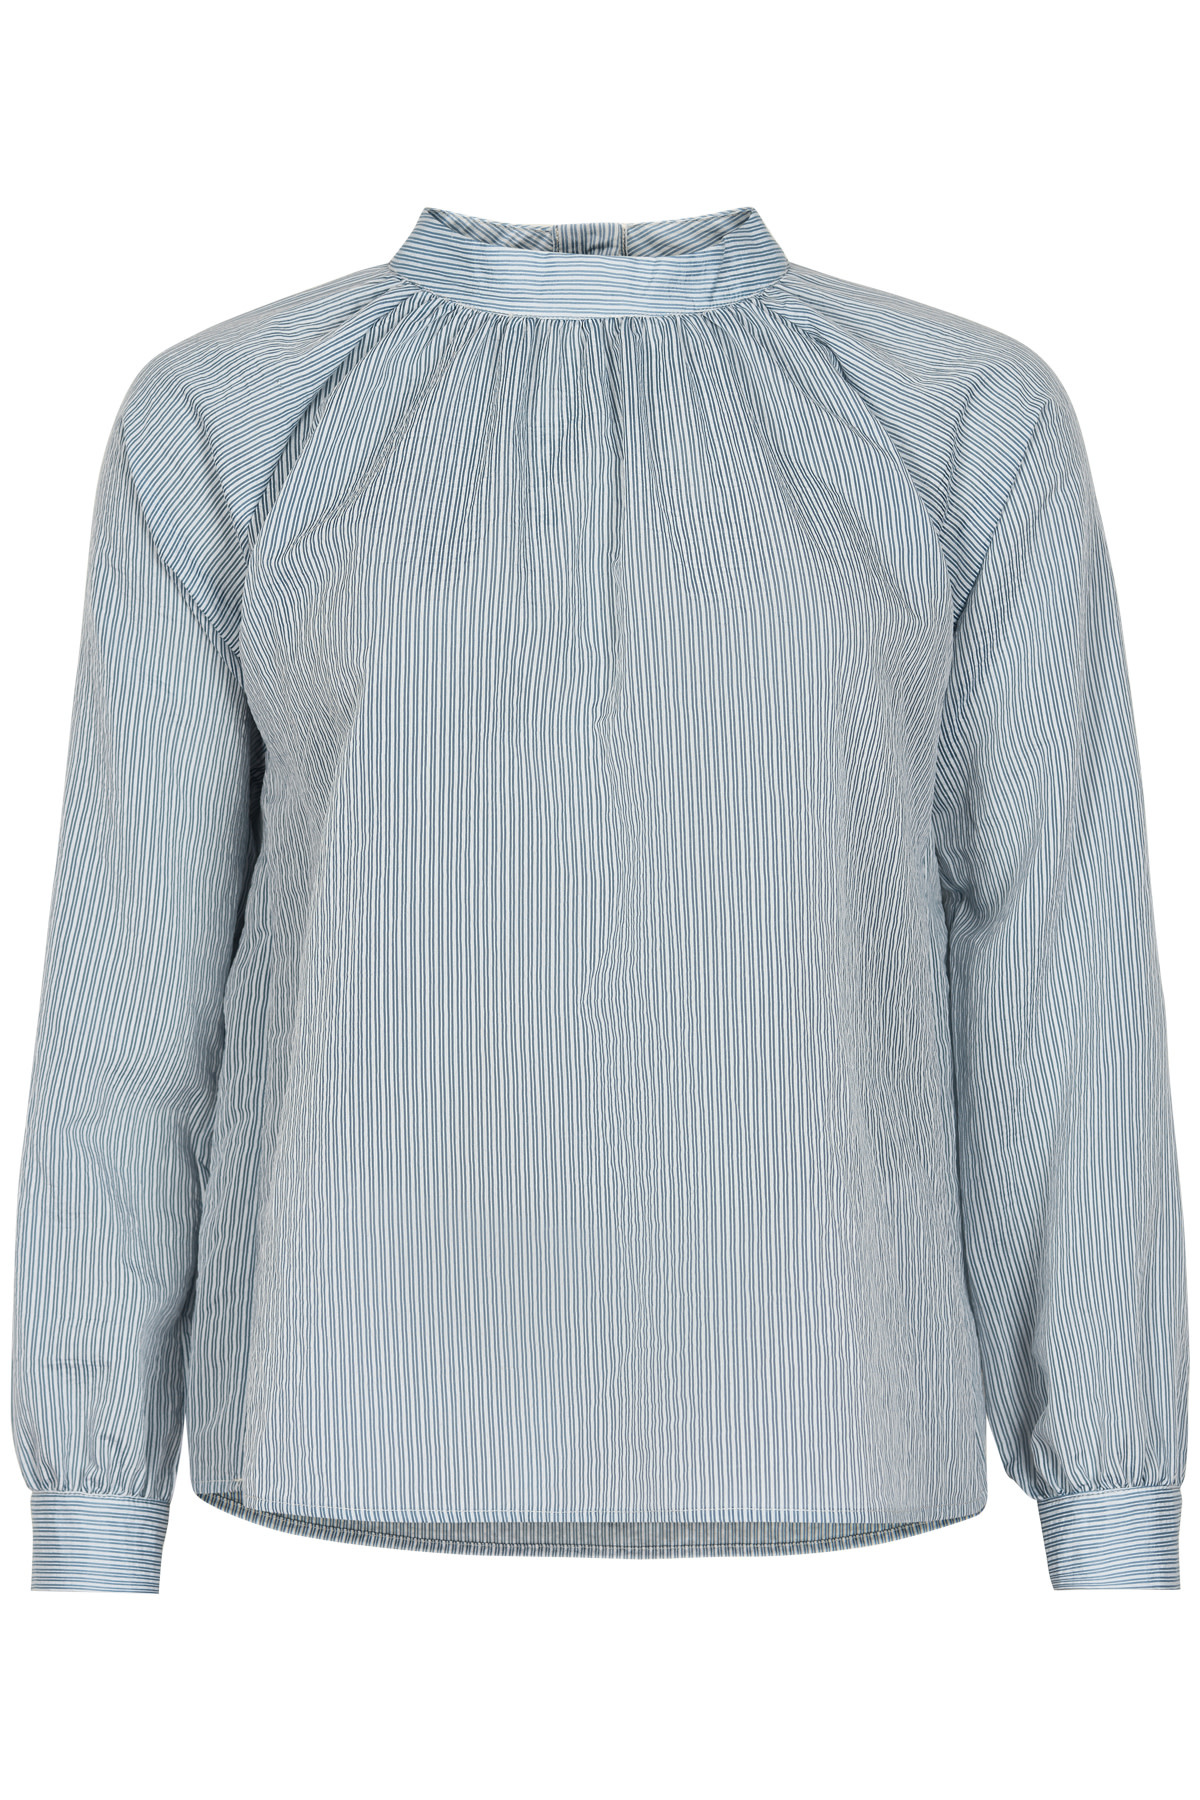 AndLess New Paole Blouse